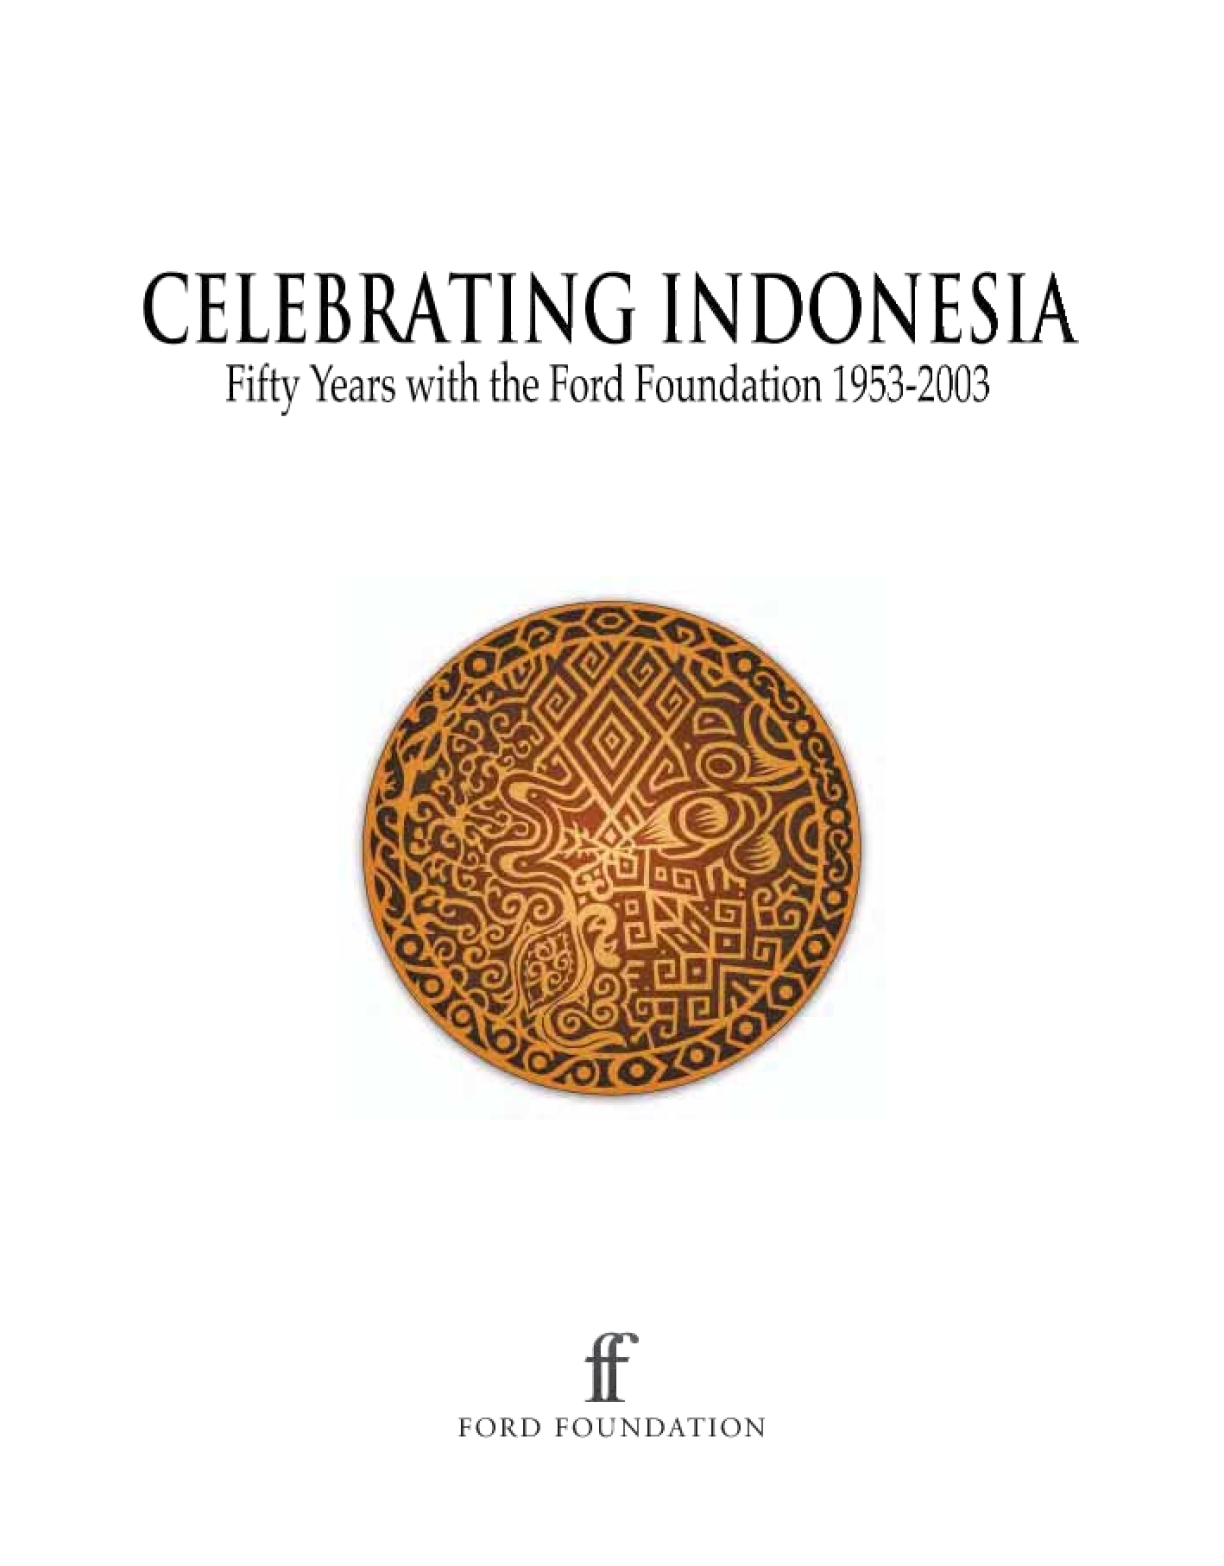 Celebrating Indonesia: Fifty Years With the Ford Foundation 1953-2003